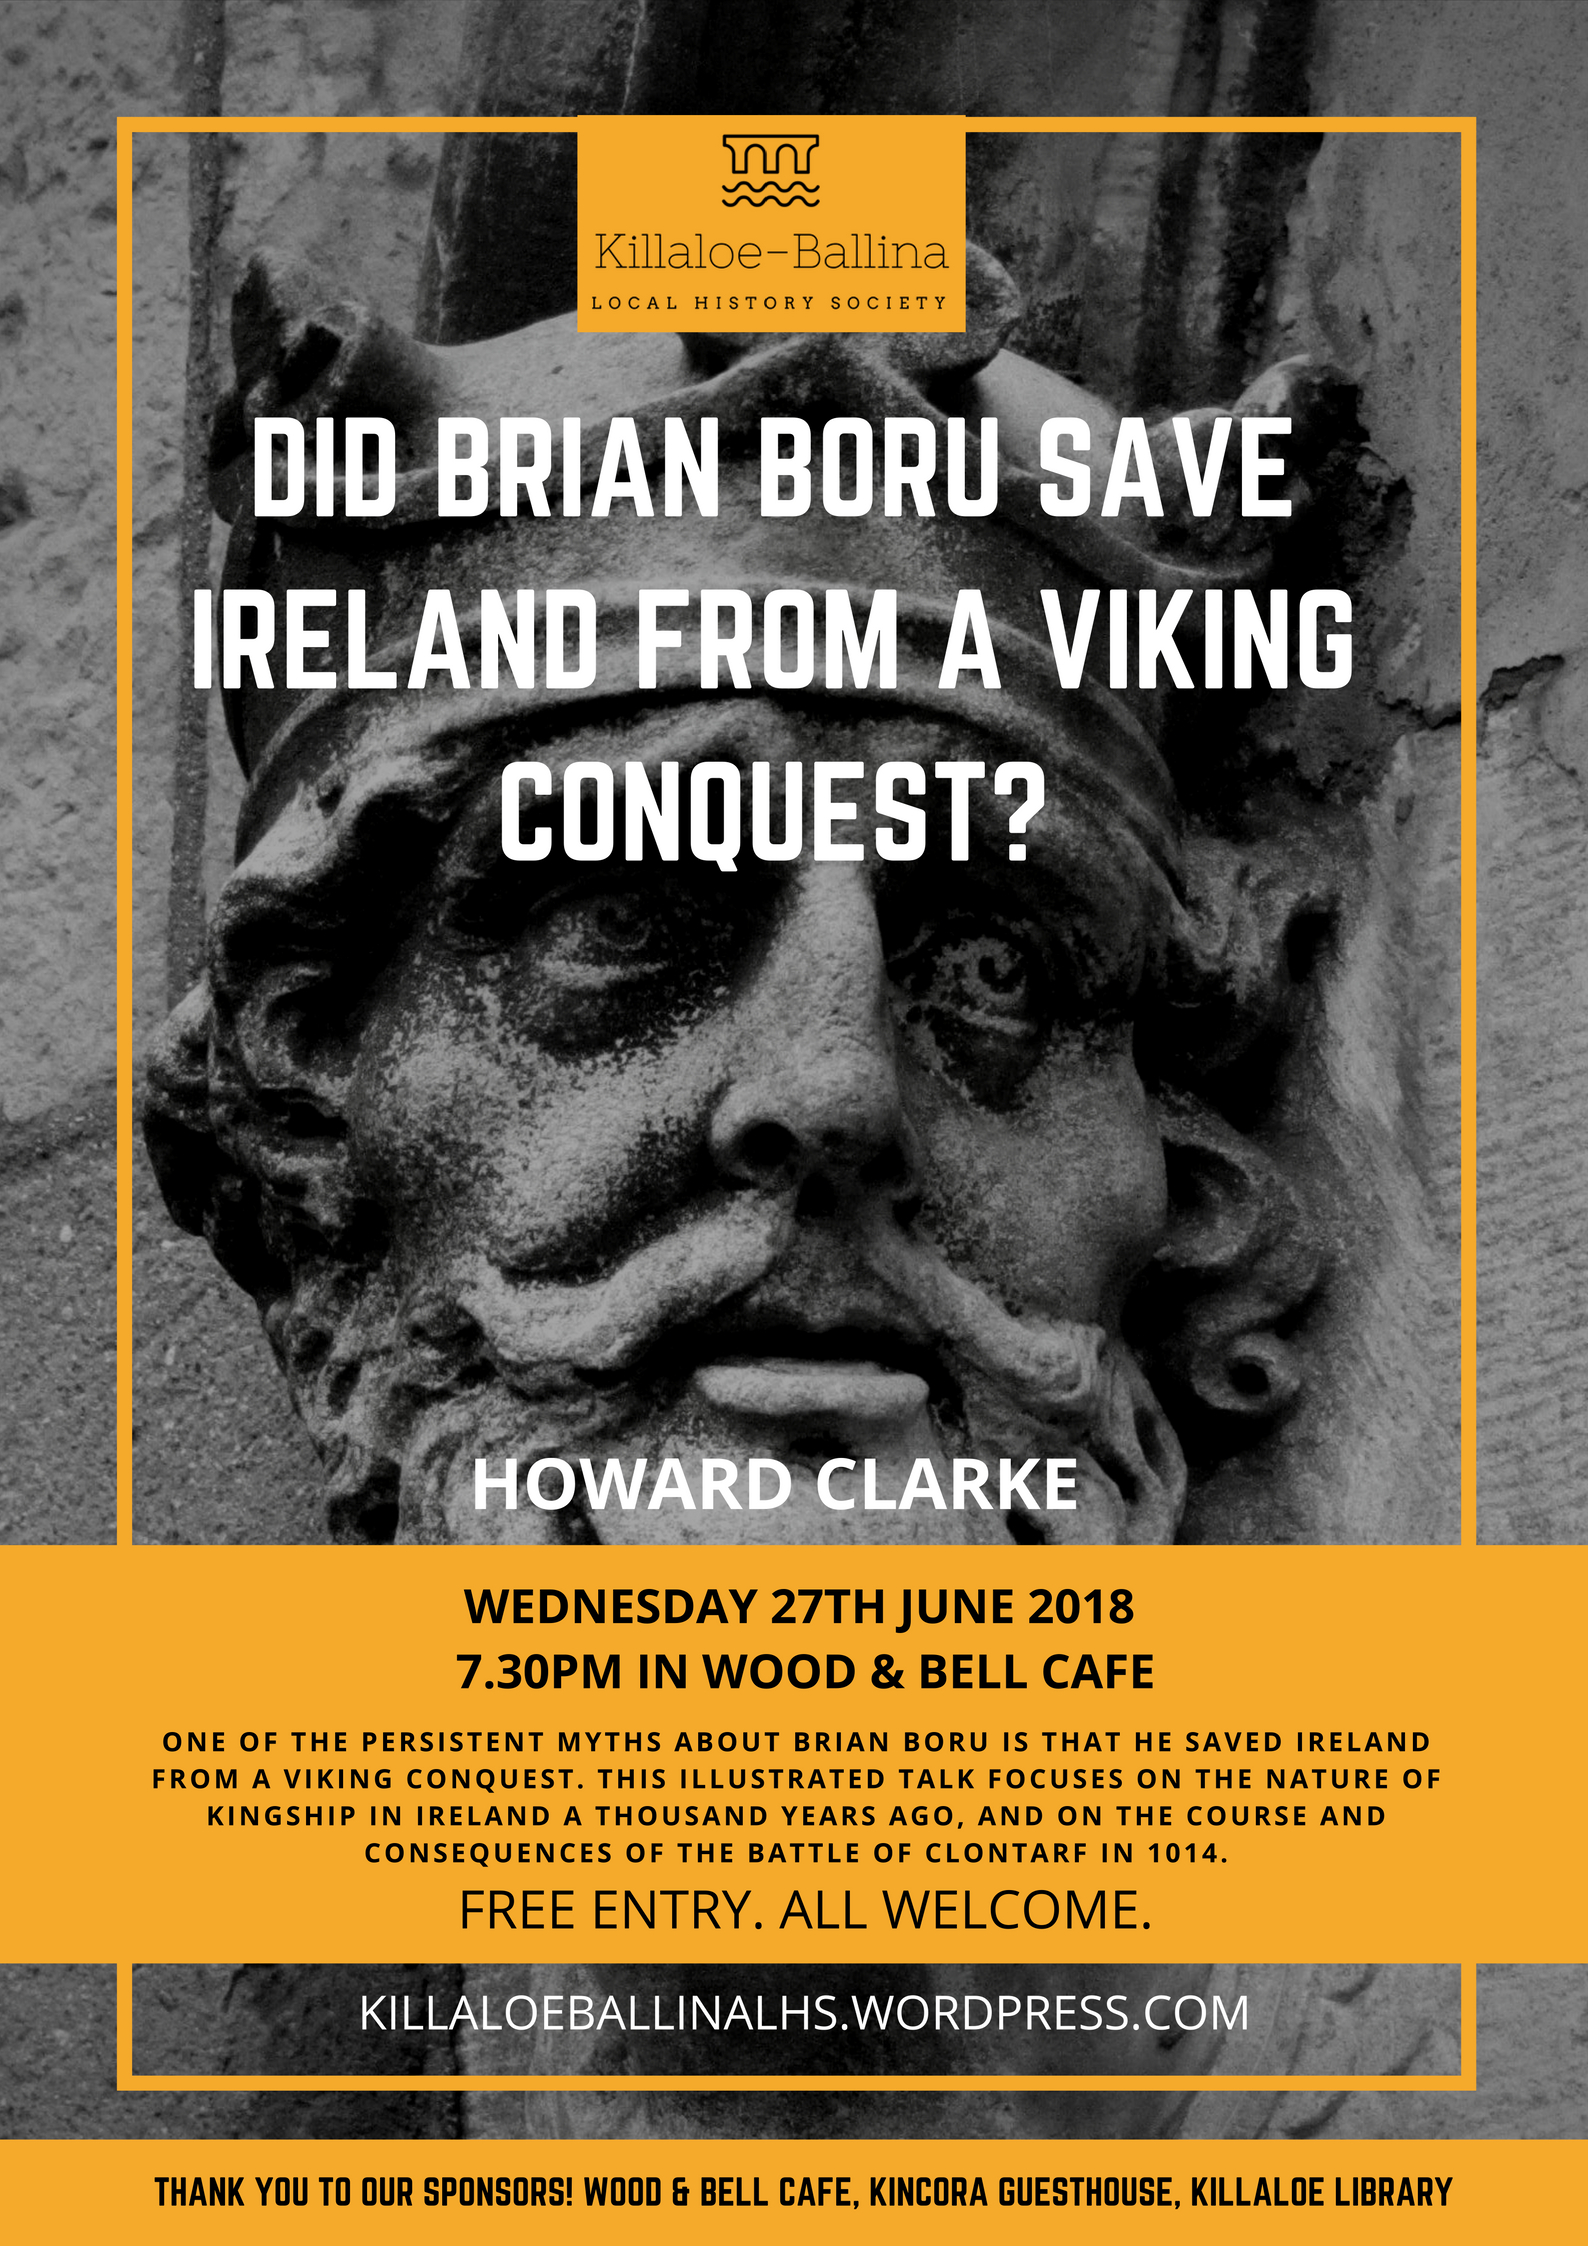 We are thrilled to announce that our June lecture will be on someone very  close to all of our hearts here in Killaloe and Ballina – Brian Boru!